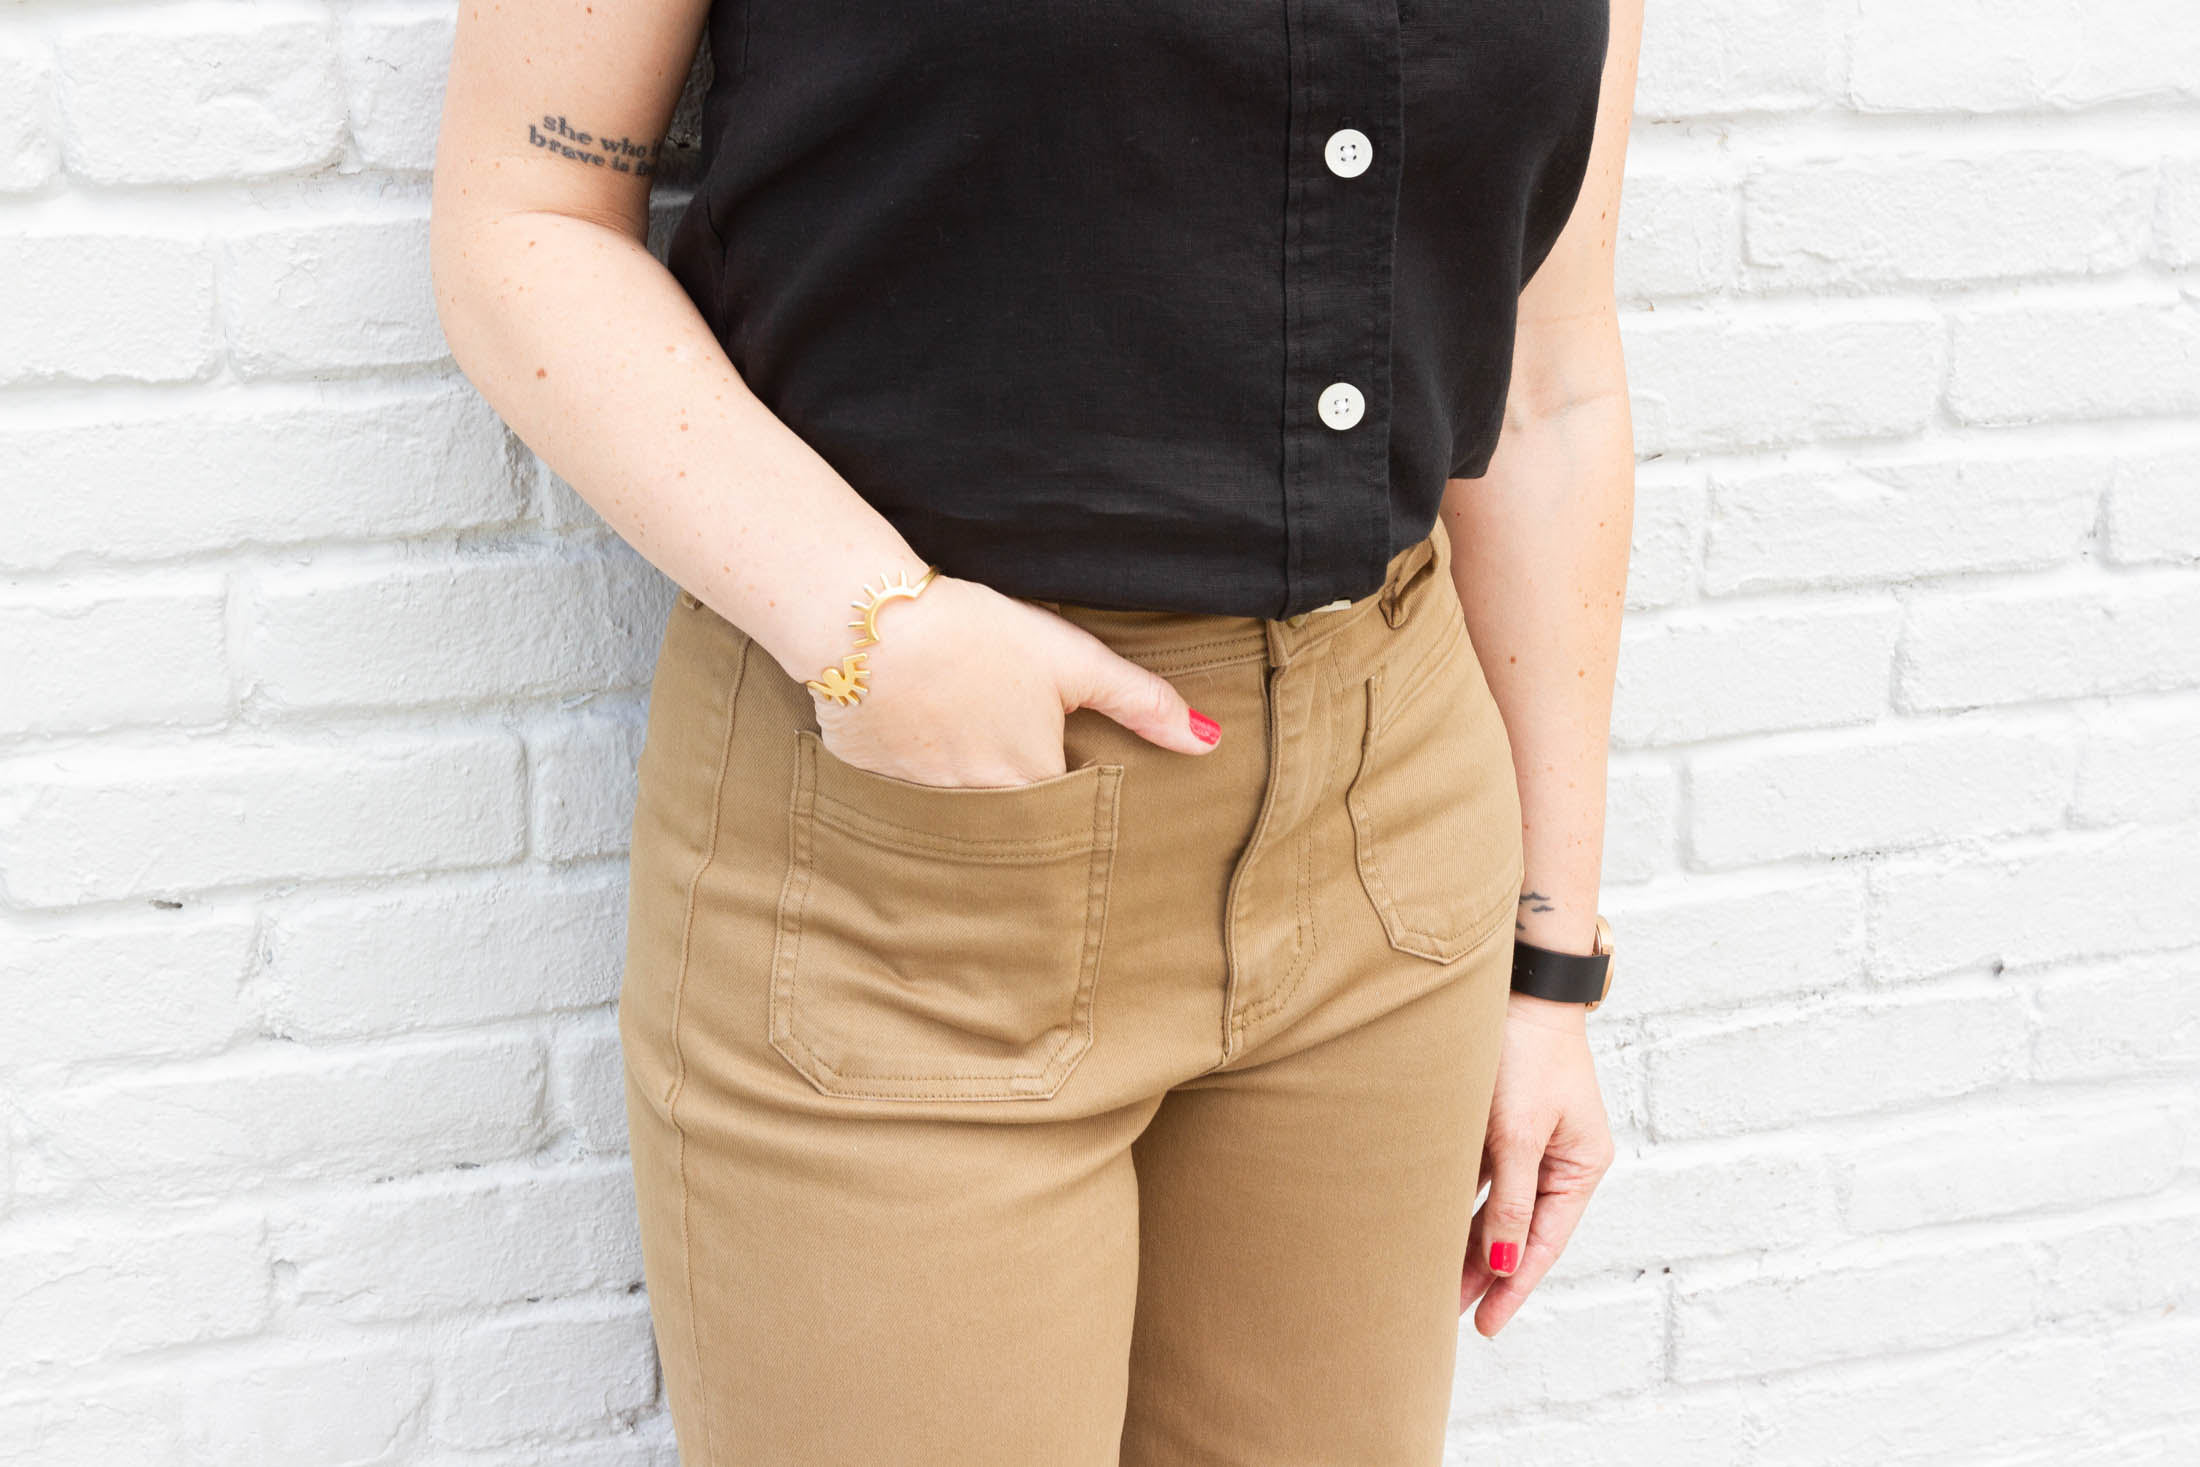 We're obsessed with Everlane's ethical retail practices. Well-made daily go-tos are on our radar for spring & these outfits are spot-on. Check 'em out.